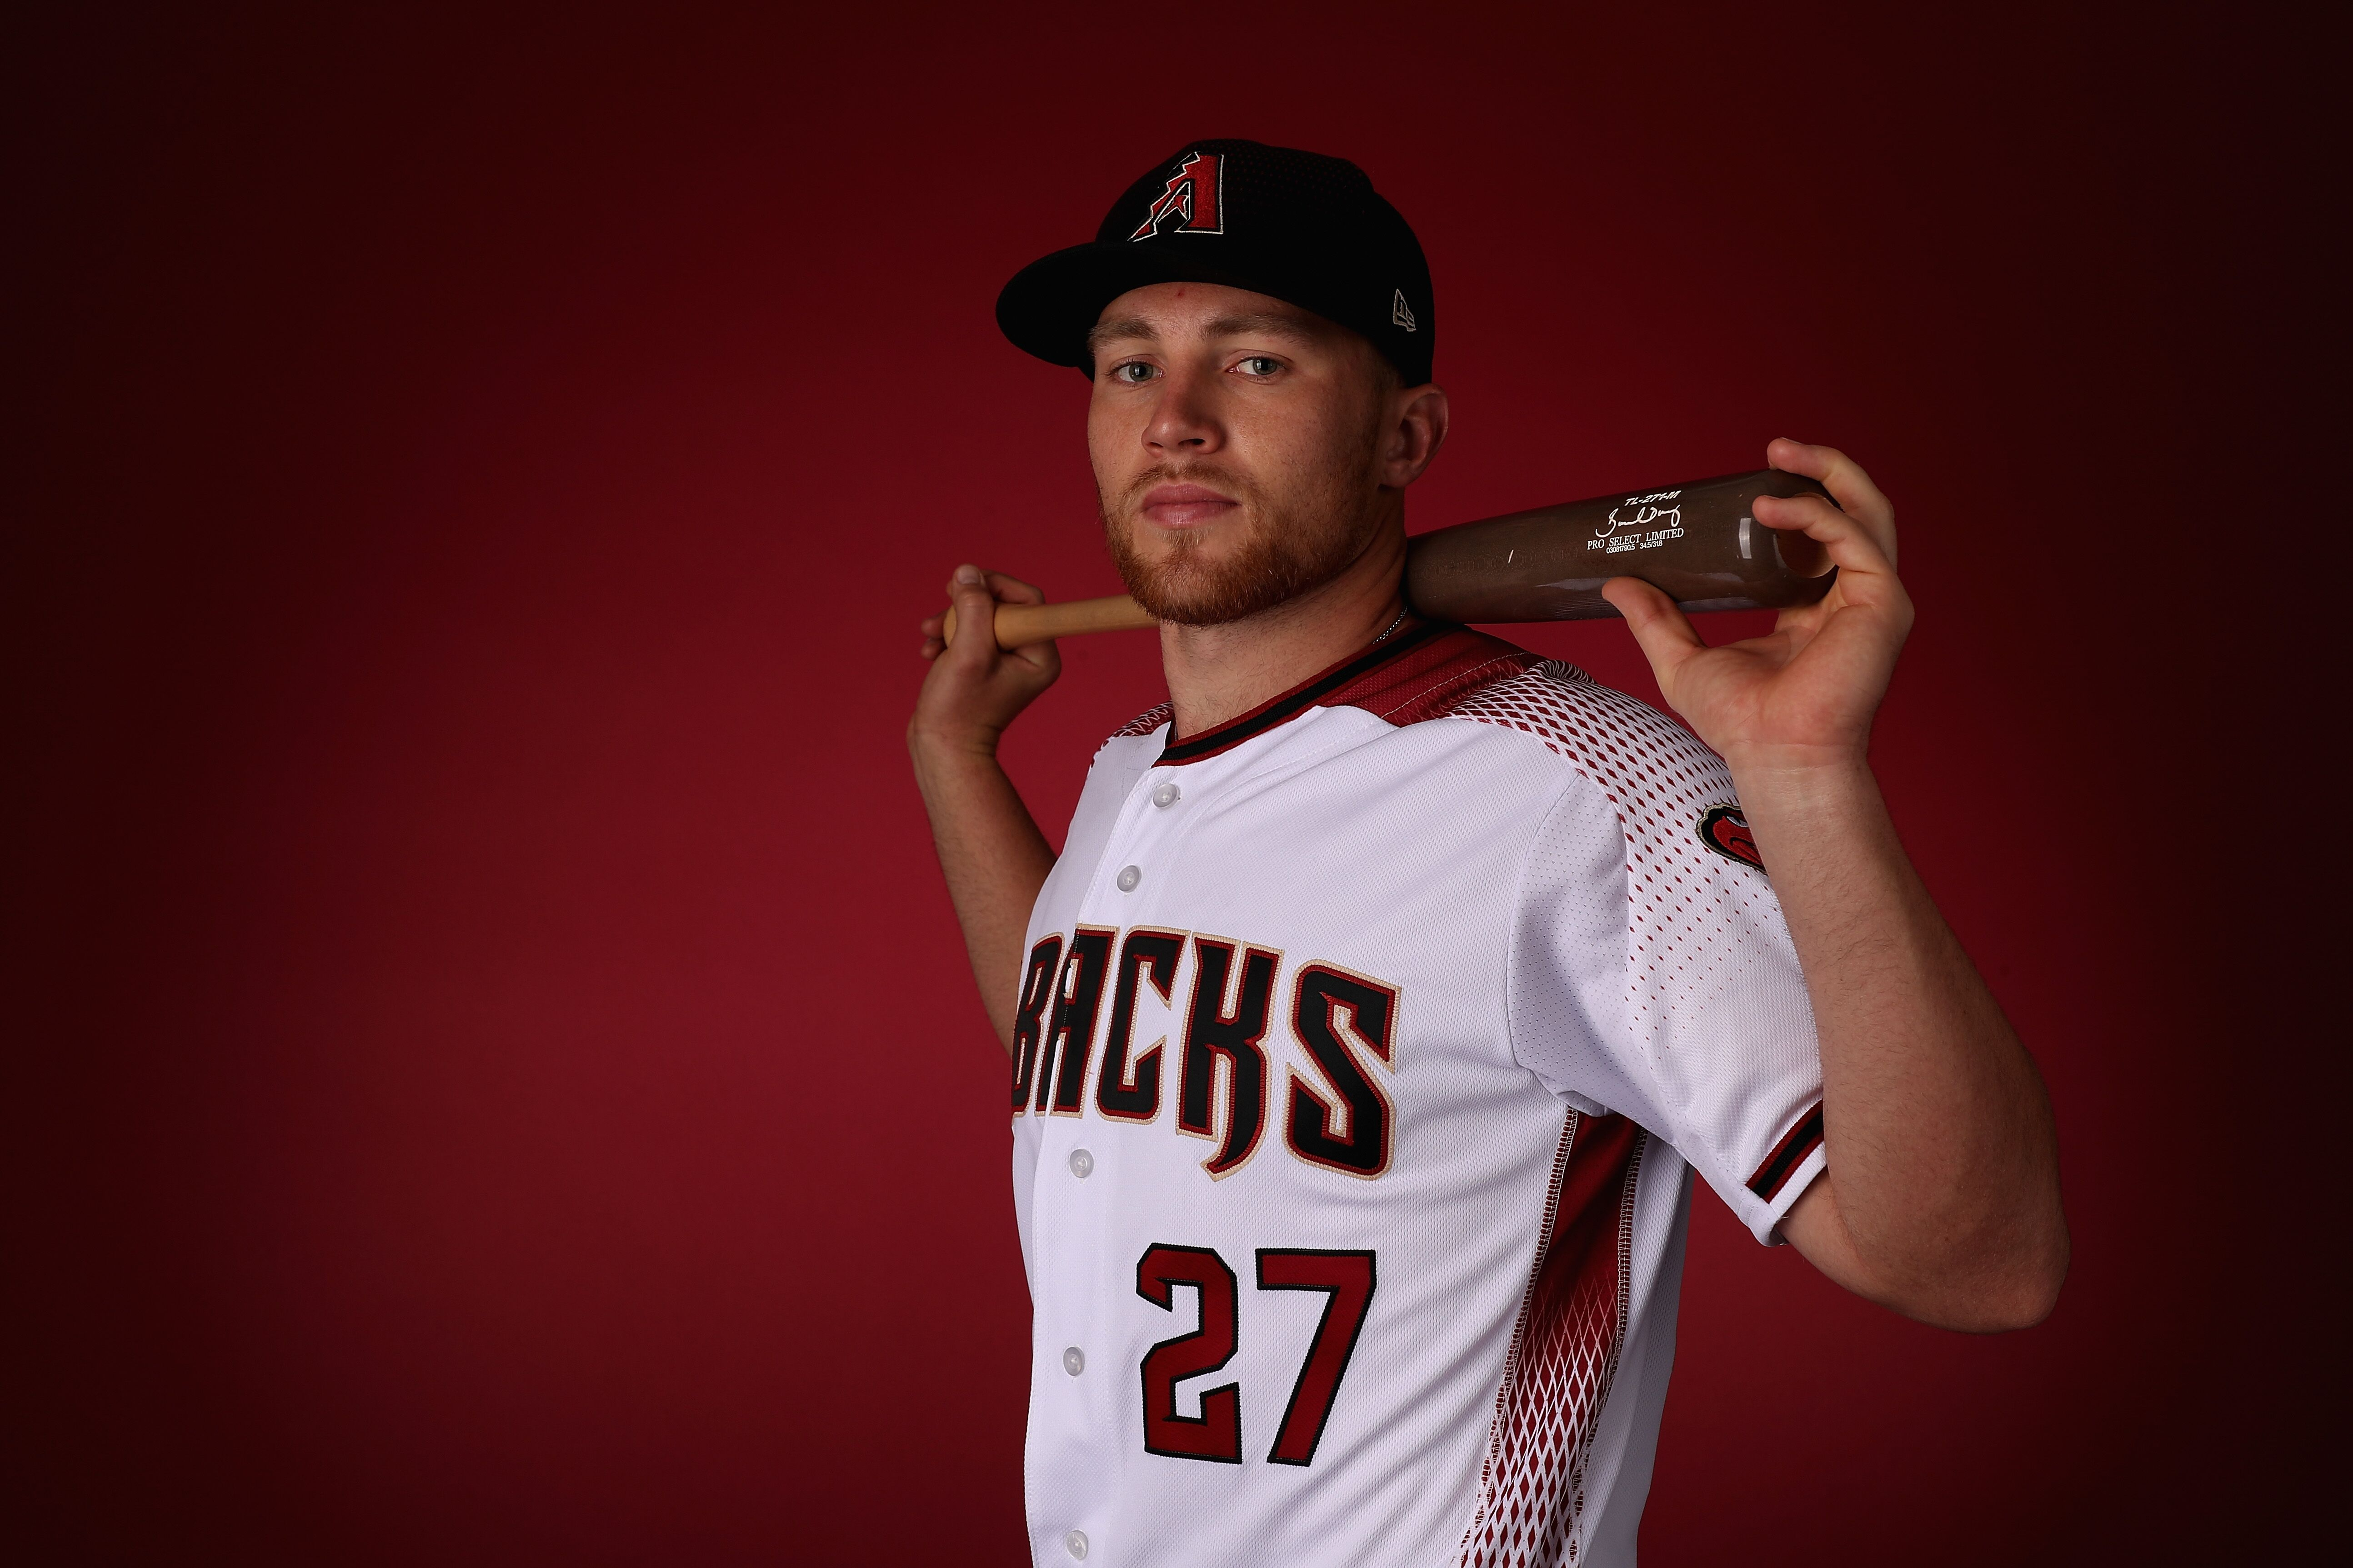 921647358-arizona-diamondbacks-photo-day.jpg